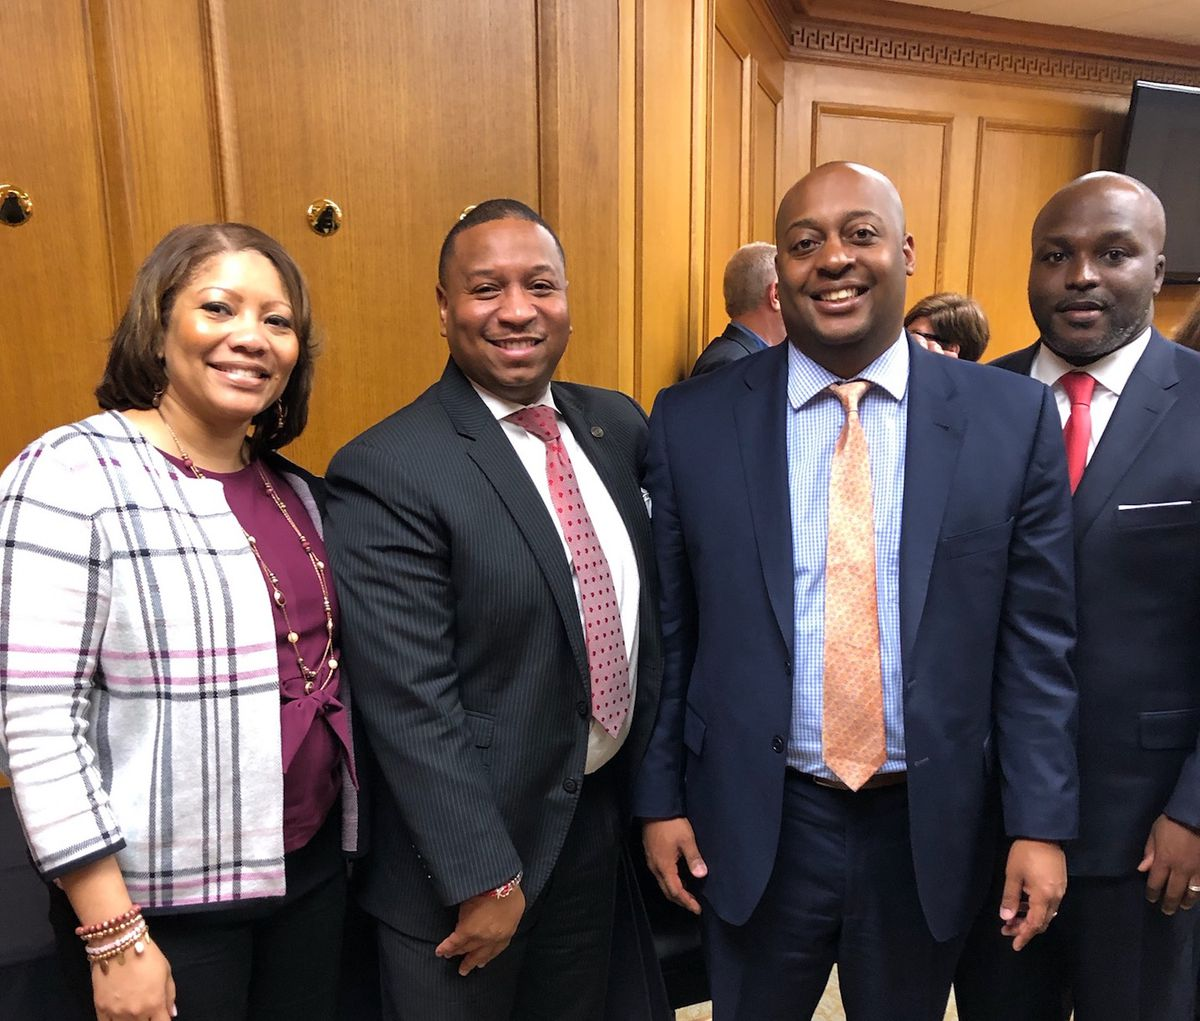 Superintendents or interim directors from four districts attended Tuesday's meeting with Gov. Bill Lee. From left: Adrienne Battle of Nashville, Joris Ray from Memphis, Eric Jones from Jackson, and Bryan Johnson of Chattanooga (Photo courtesy of Shelby County Schools)